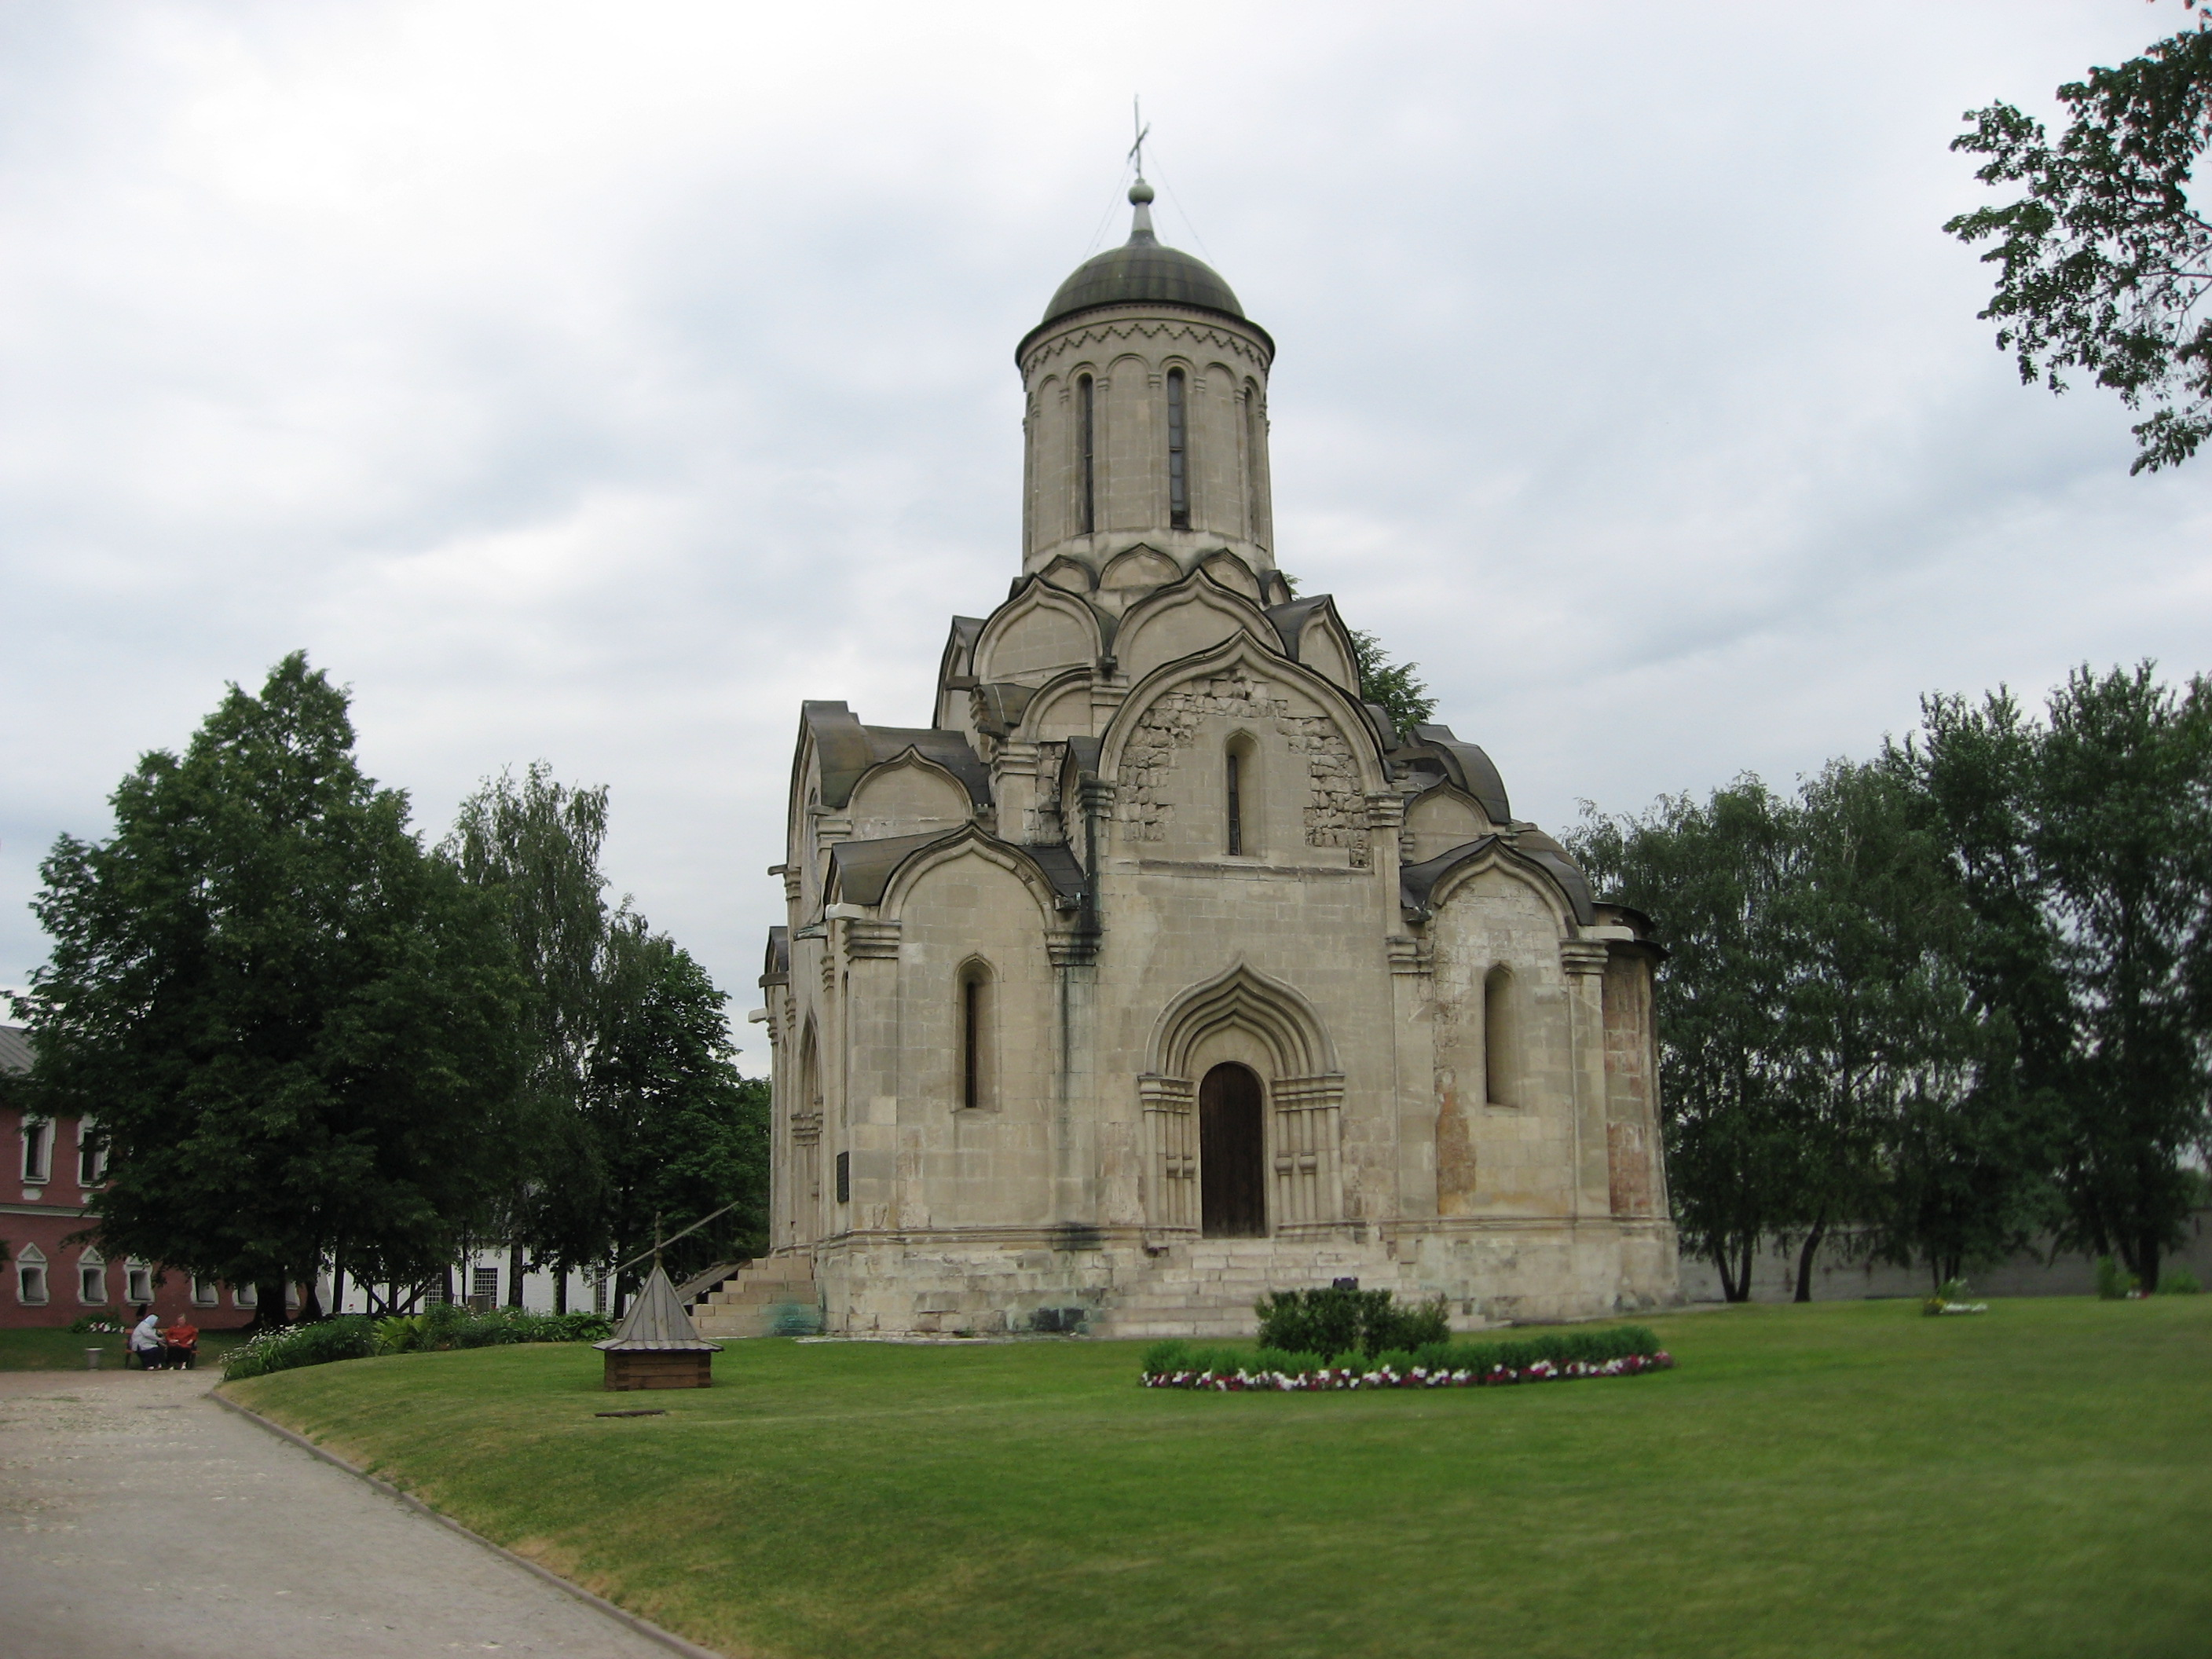 Main church at the Spaso-Andronikov Monastery said to be designed by St. Andrey Rublov